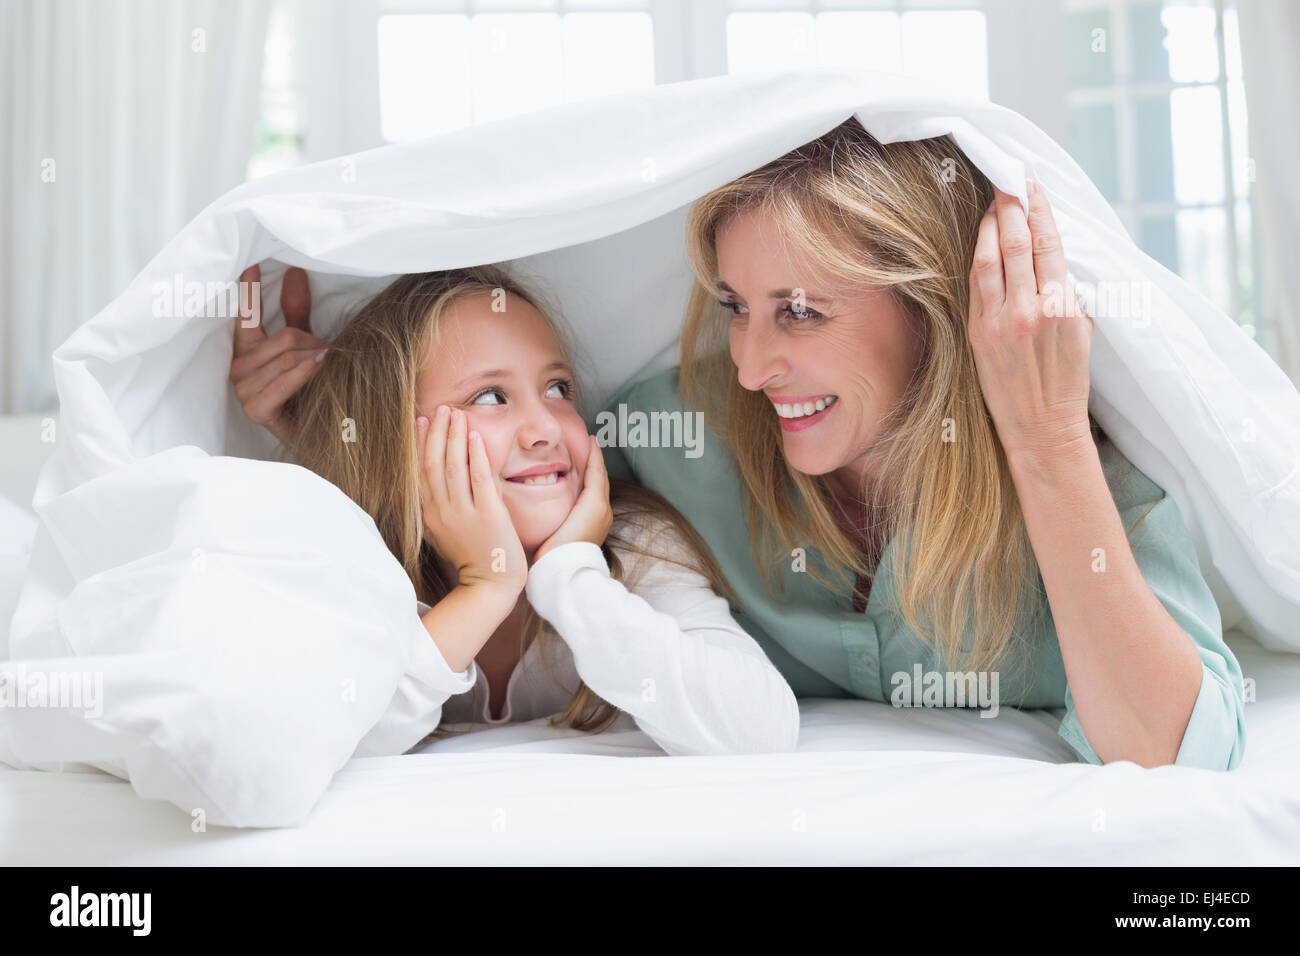 Mother and daughter looking at each other under the duvet Stock Photo